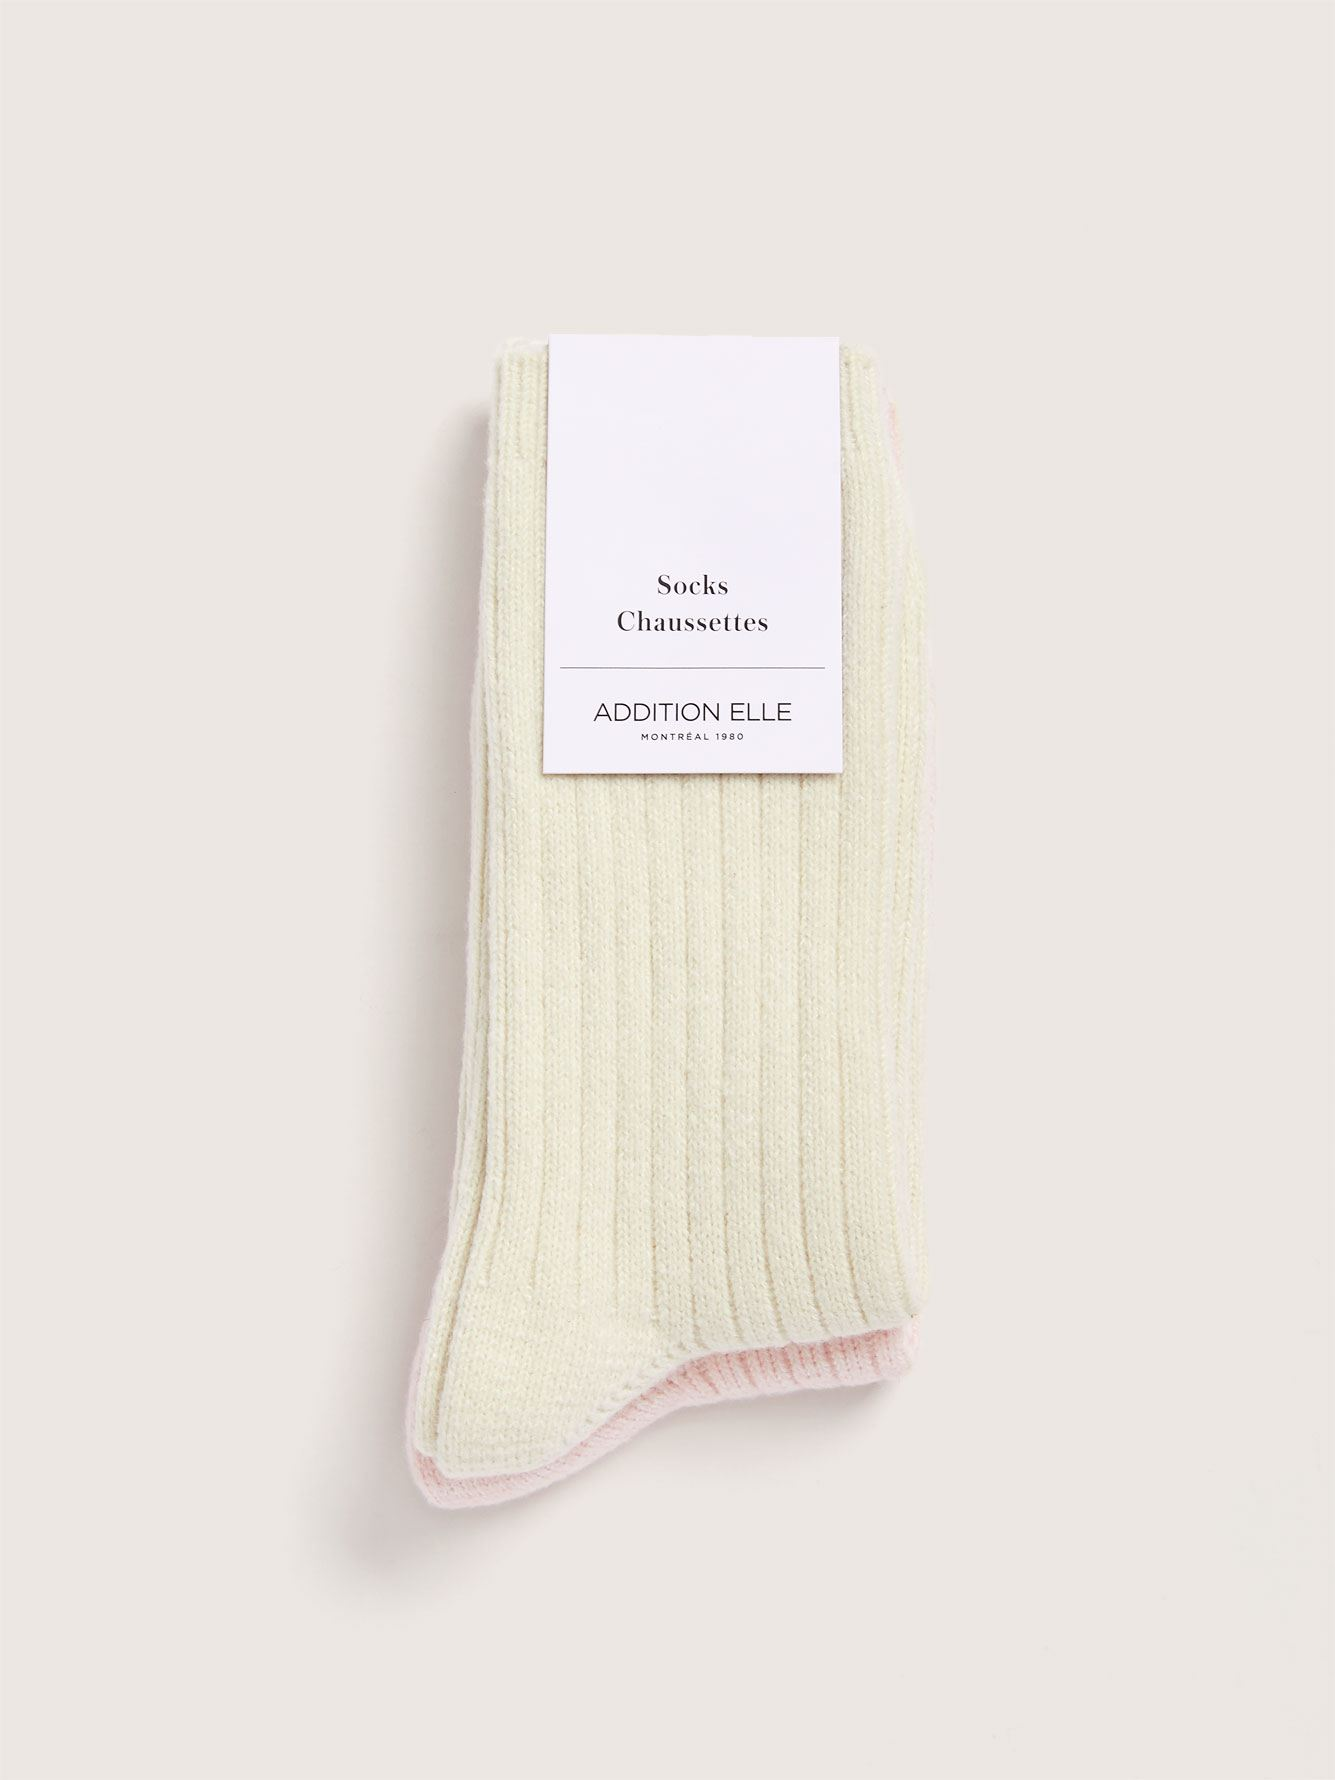 Ribbed Non-Slip Socks, Pack of 2 - Addition Elle